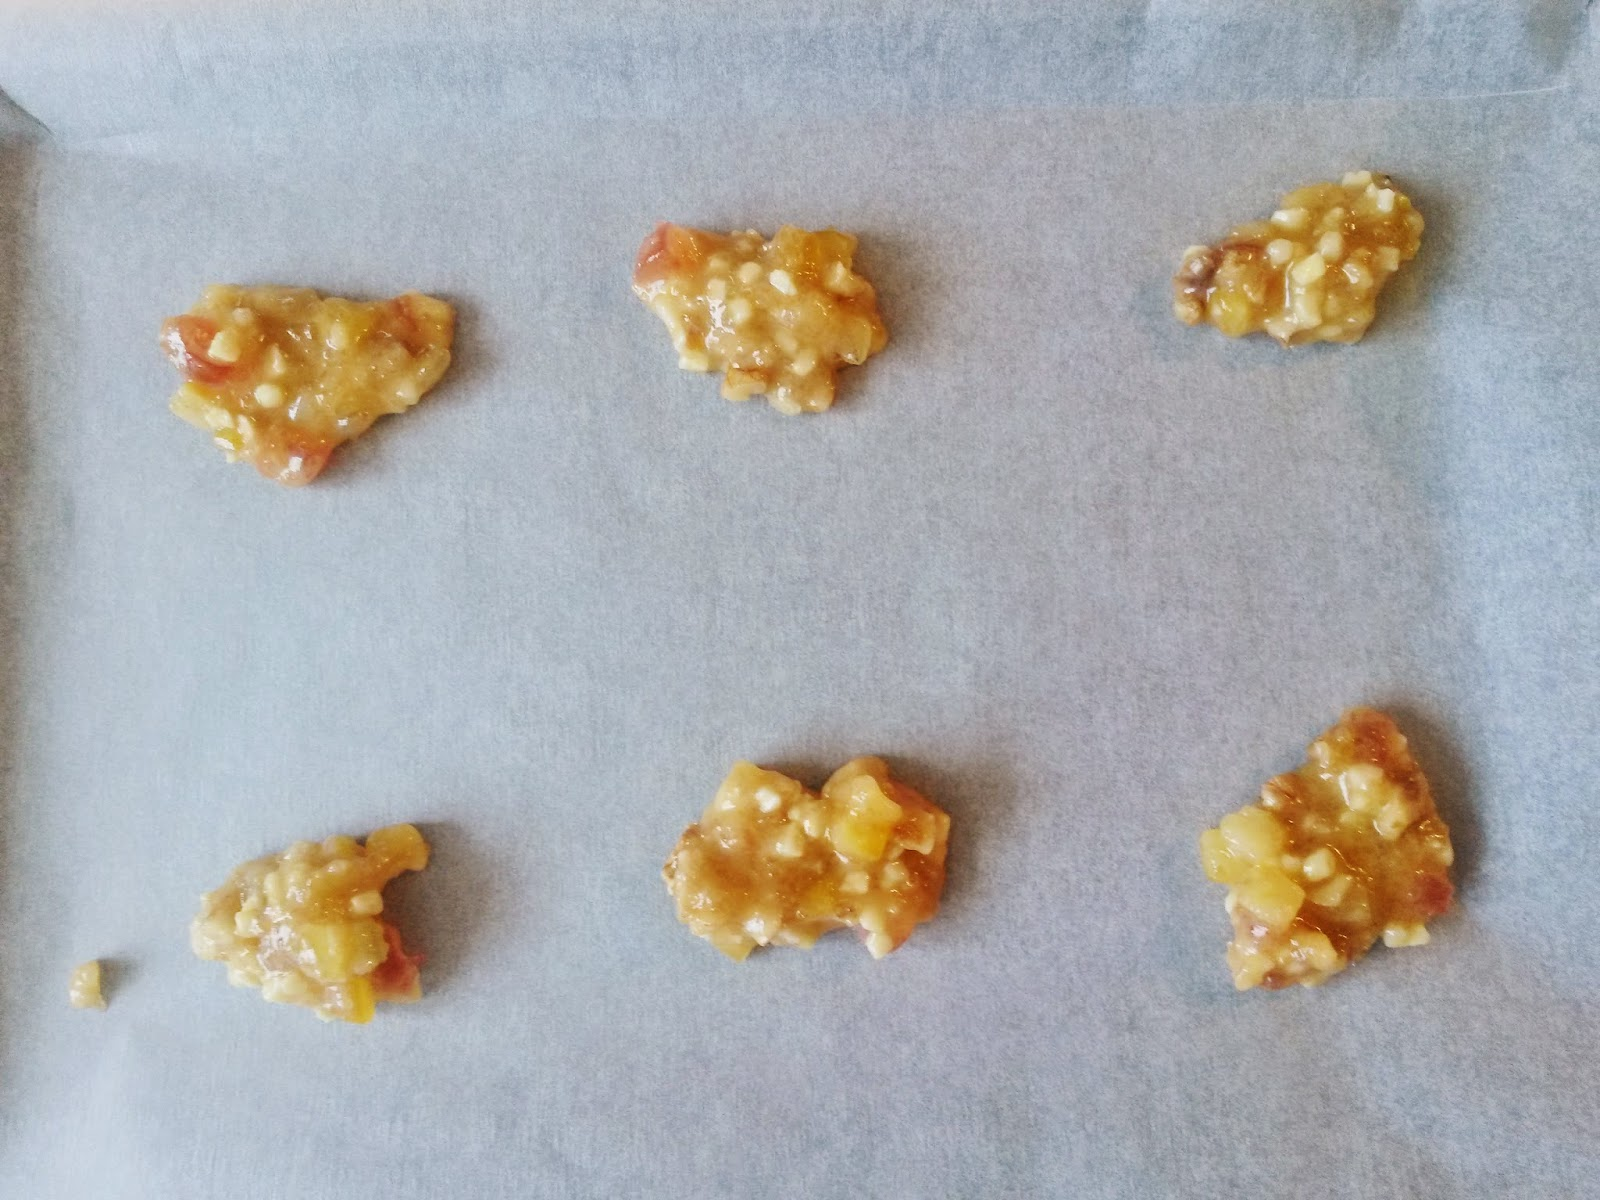 Baking florentines, homemade biscuits